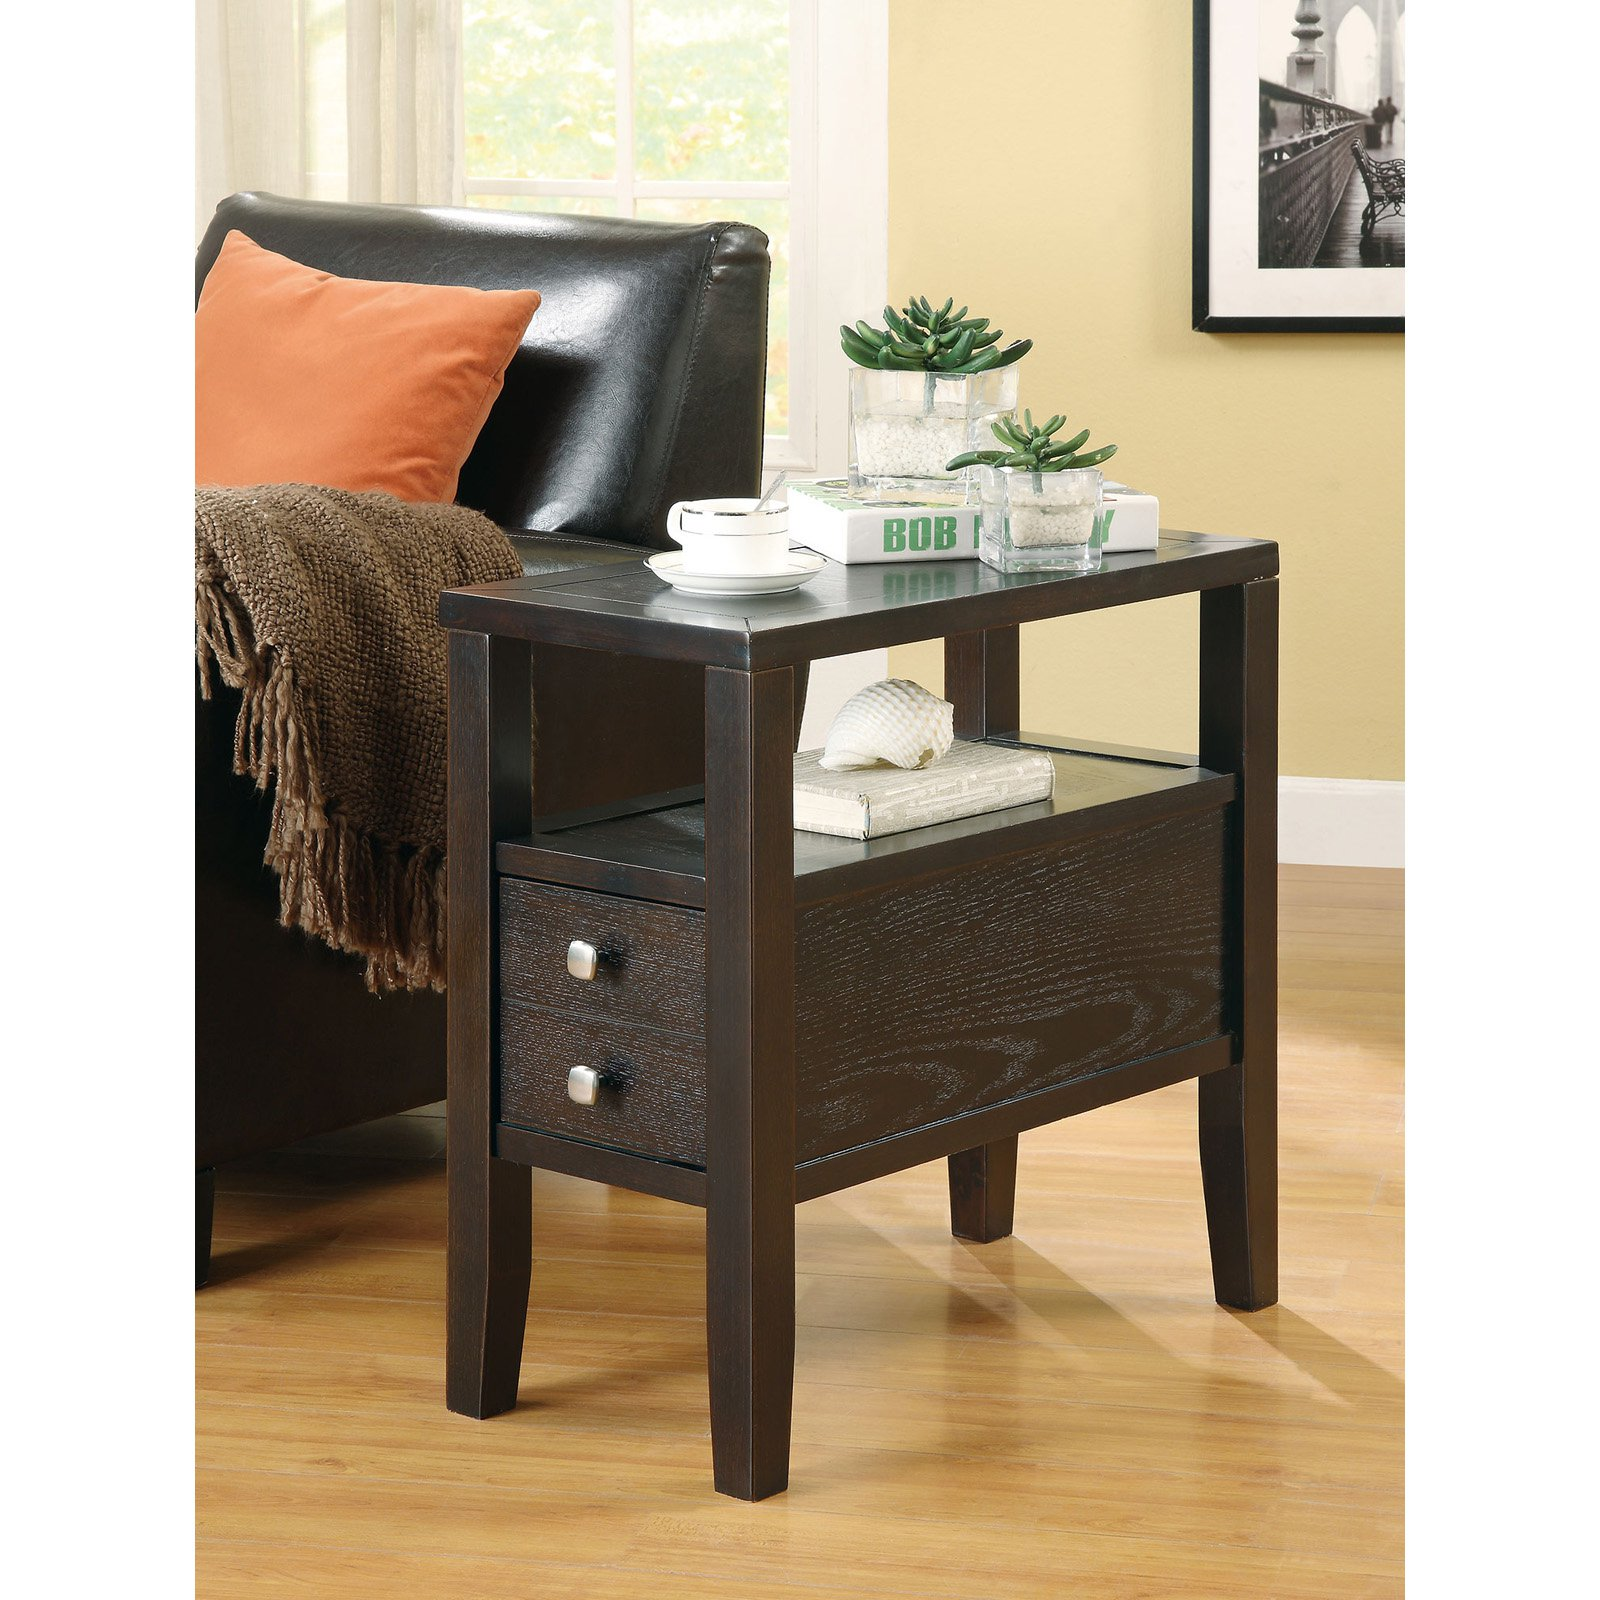 Coaster Furniture Cappuccino Modern Chairside End Table